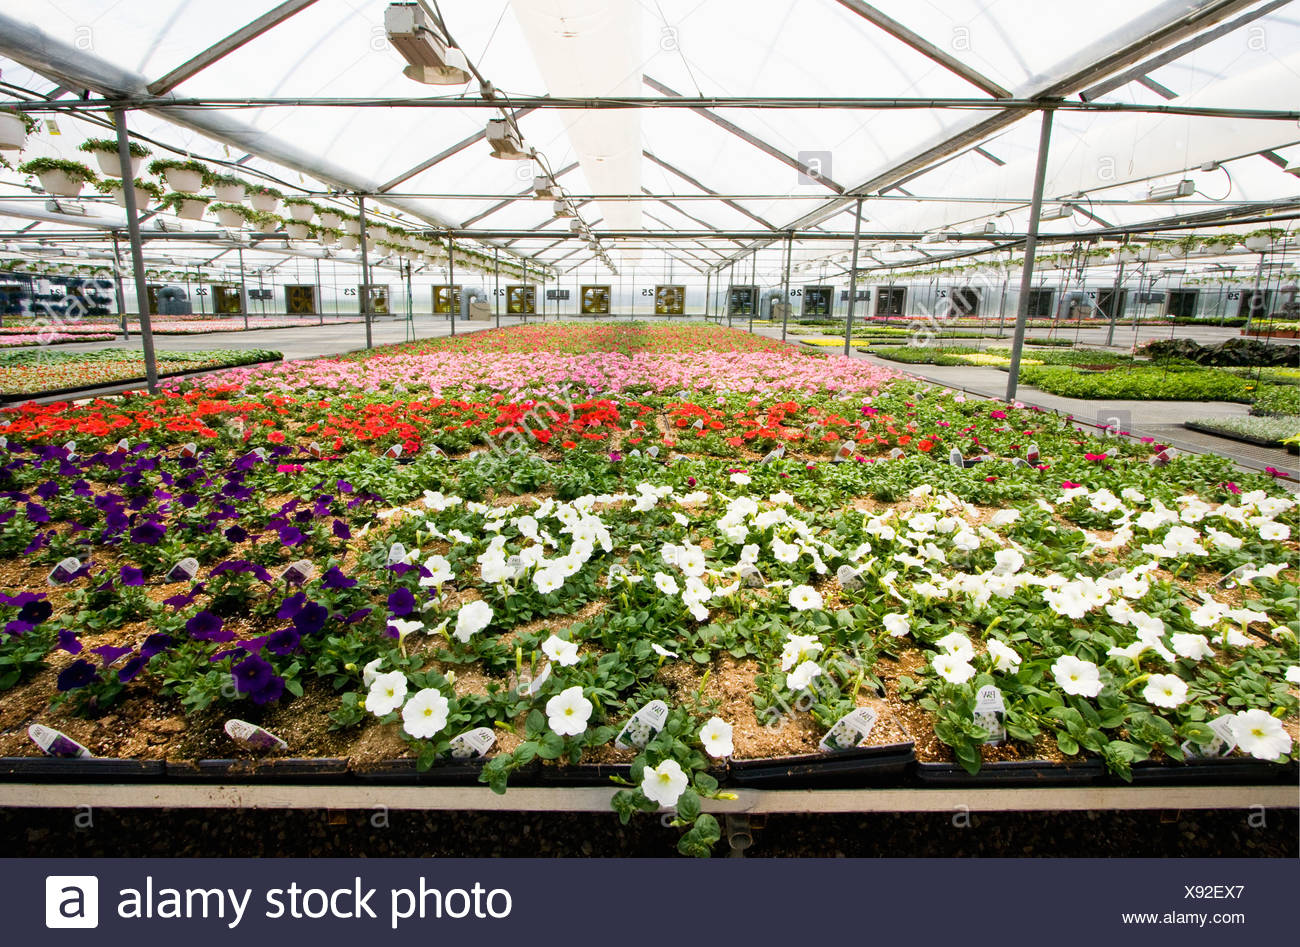 Incredible White Red And Pink Petunias In Flats On A Bench And Hanging Gmtry Best Dining Table And Chair Ideas Images Gmtryco